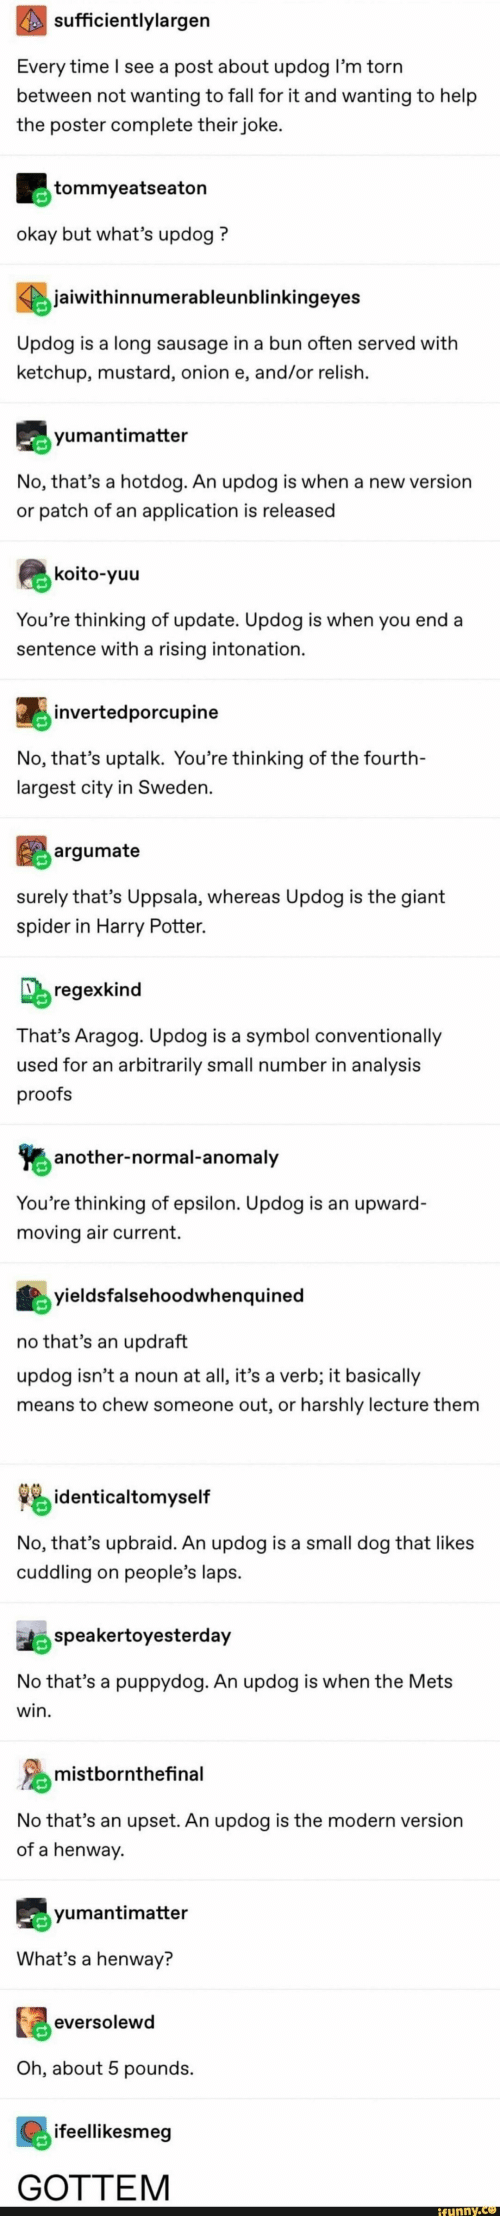 Youre Thinking: sufficientlylargen  Every time l see a post about updog l'm torn  between not wanting to fall for it and wanting to help  the poster complete their joke  tommyeatseaton  okay but what's updog?  jaiwithinnumerableunblinkingeyes  Updog is a long sausage in a bun often served with  ketchup, mustard, onion e, and/or relish.  yumantimatter  No, that's a hotdog. An updog is when a new version  or patch of an application is released  koito-yuu  You're thinking of update. Updog is when you end a  sentence with a rising intonation  jinvertedporcupine  No, that's uptalk. You're thinking of the fourth-  largest city in Sweden.  argumate  surely that's Uppsala, whereas Updog is the giant  spider in Harry Potter.  regexkind  That's Aragog. Updog is a symbol conventionally  used for an arbitrarily small number in analysis  proofs  another-normal-anomaly  You're thinking of epsilon. Updog is an upward-  moving air current.  yieldsfalsehoodwhenquined  no that's an updraft  updog isn't a noun at all, it's a verb; it basically  means to chew someone out, or harshly lecture them  identicaltomyself  No, that's upbraid. An updog is a small dog that likes  cuddling on people's laps  speakertoyesterday  No that's a puppydog. An updog is when the Mets  win  mistbornthefinal  No that's an upset. An updog is the modern version  of a henway  yumantimatter  What's a henway?  eversolewd  Oh, about 5 pounds  ifeellikesmeg  GOTTEM